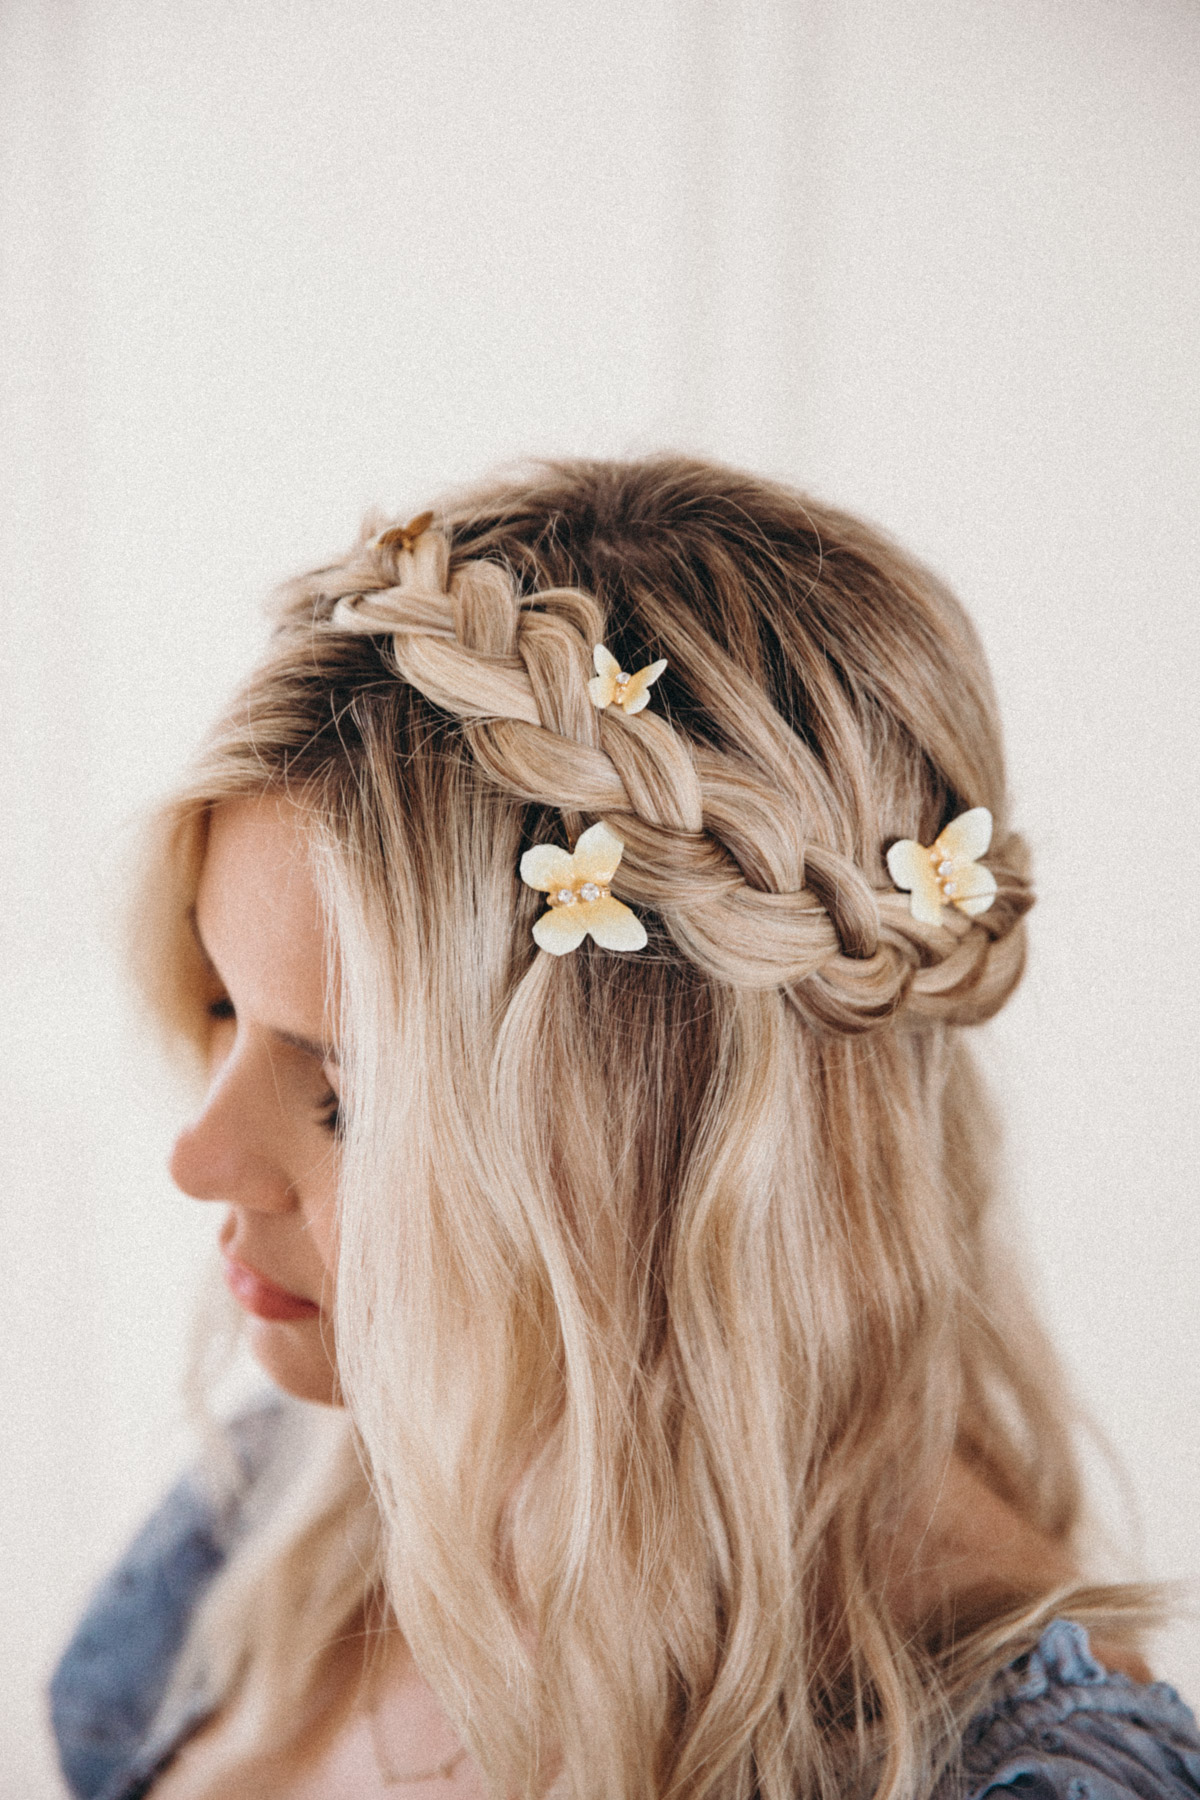 Amber Fillerup Clark wearing BFB Hair with braids and butterfly clips in her hair. Barefoot Blonde | Amber Fillerup Clark